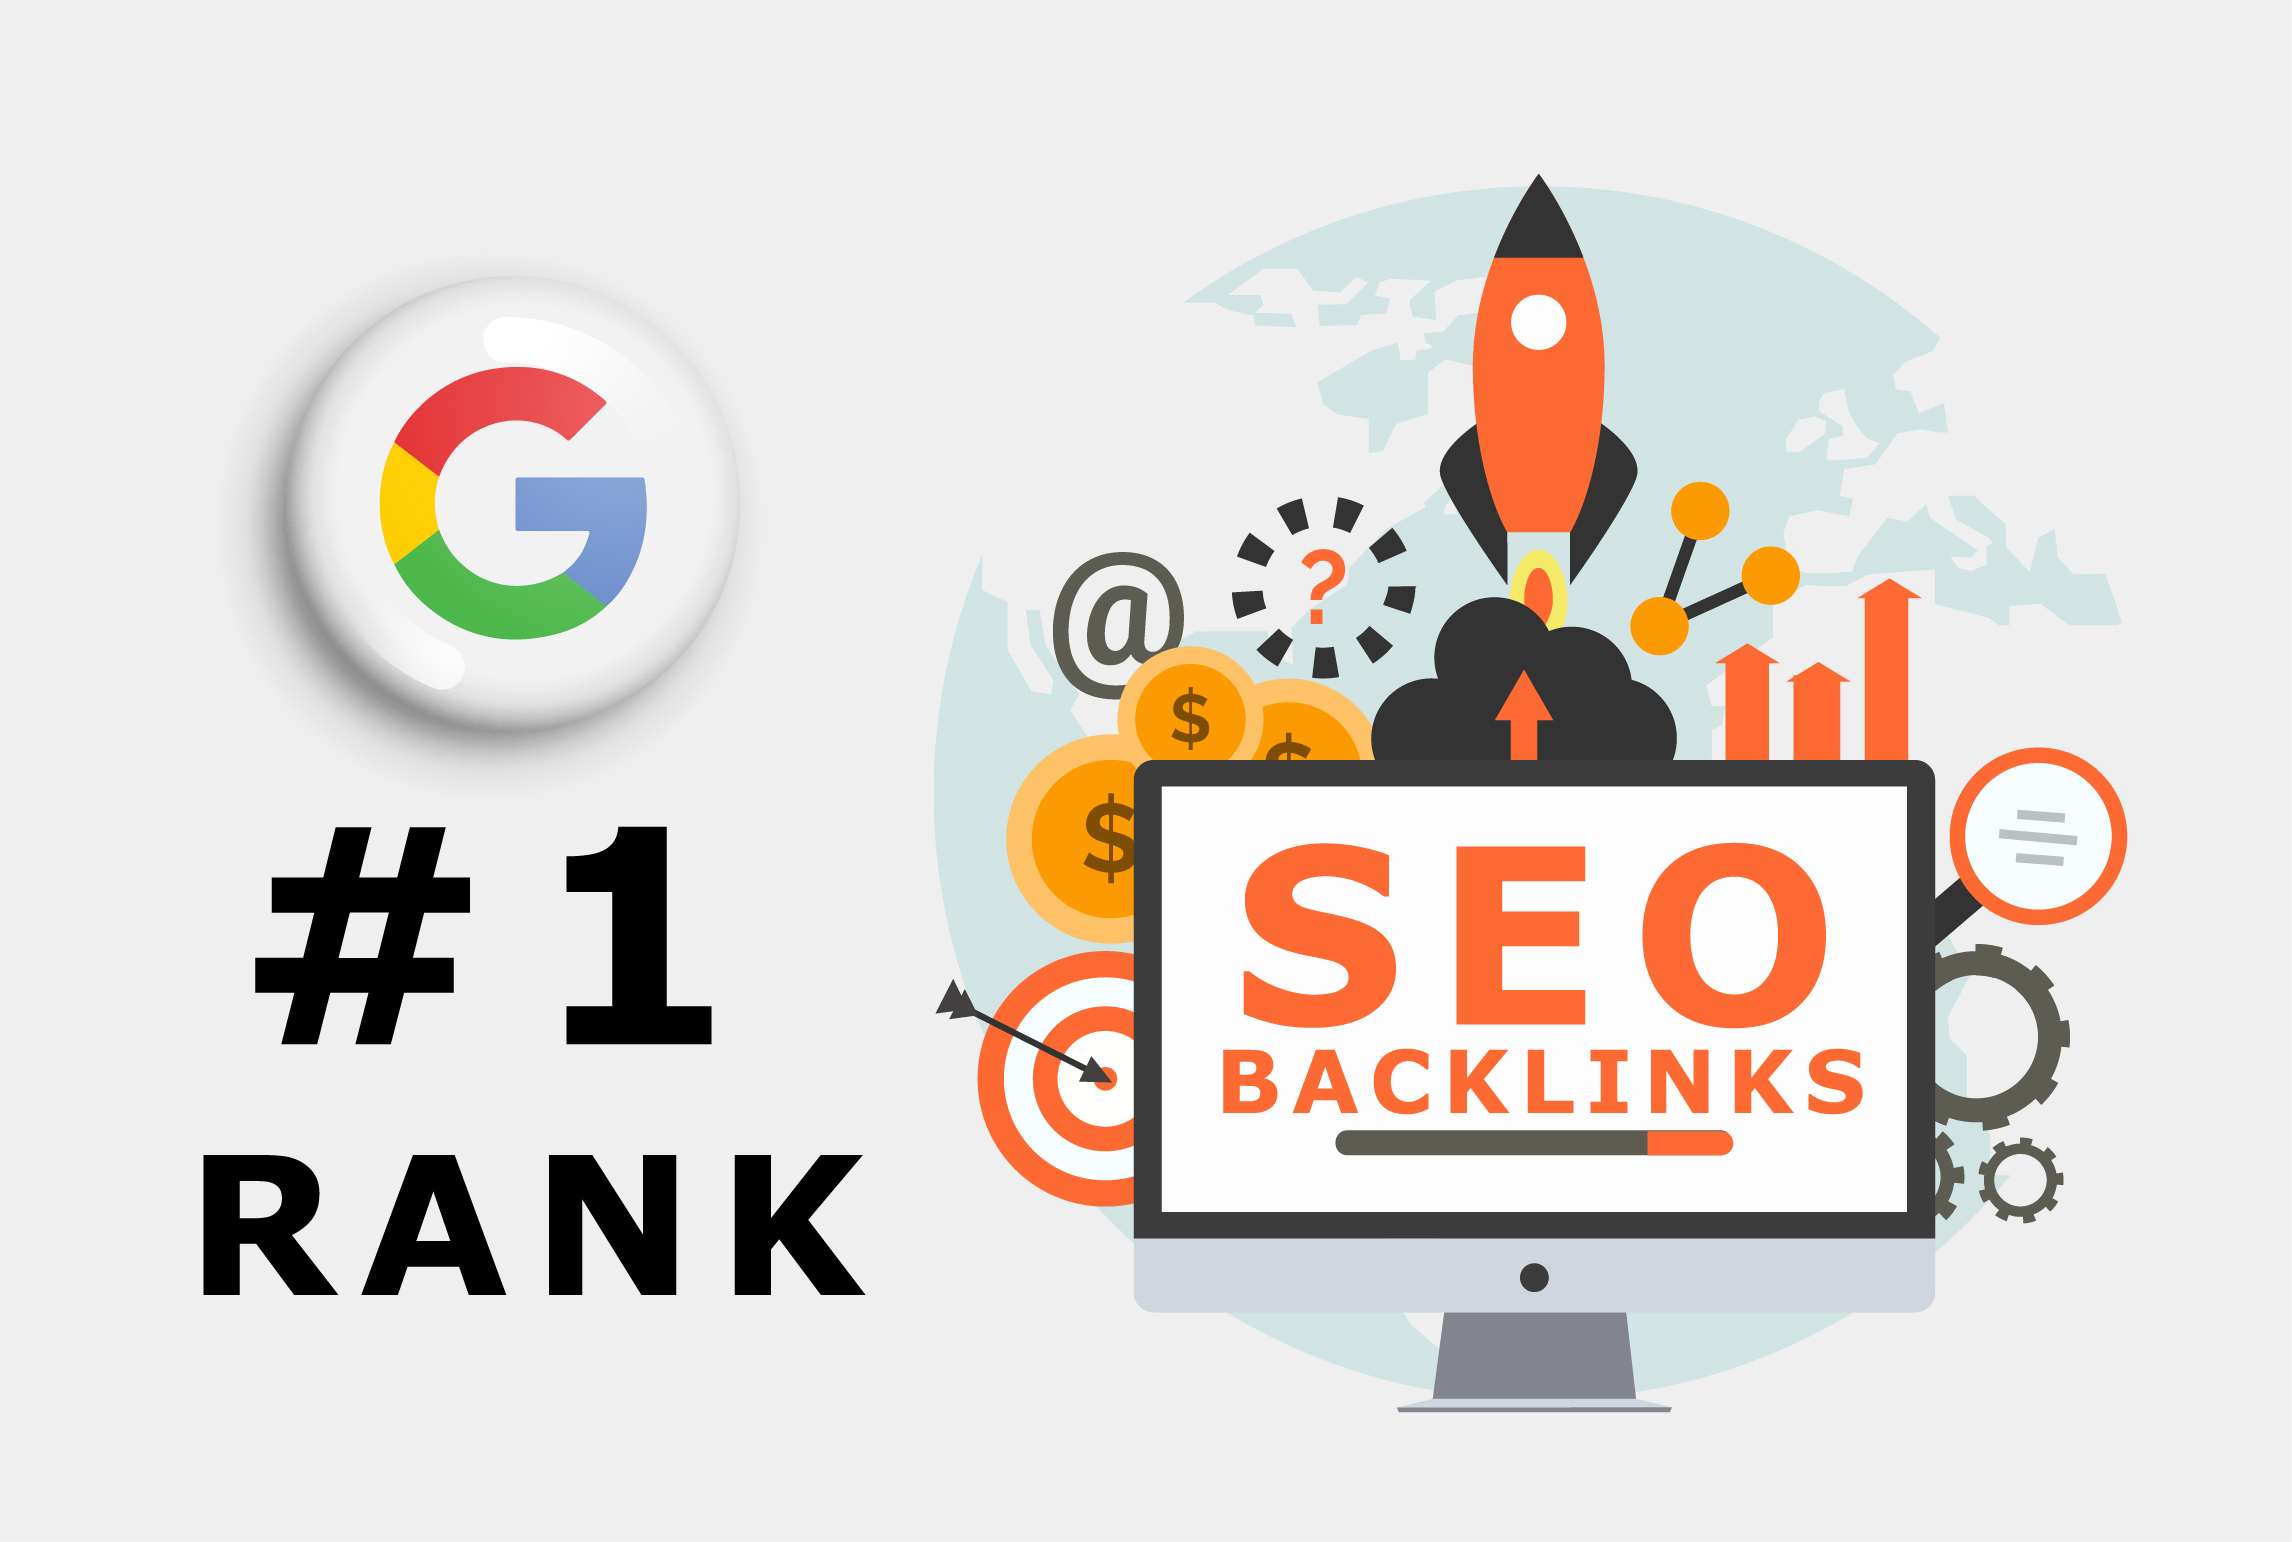 I will build high quality seo backlinks for google first page ranking